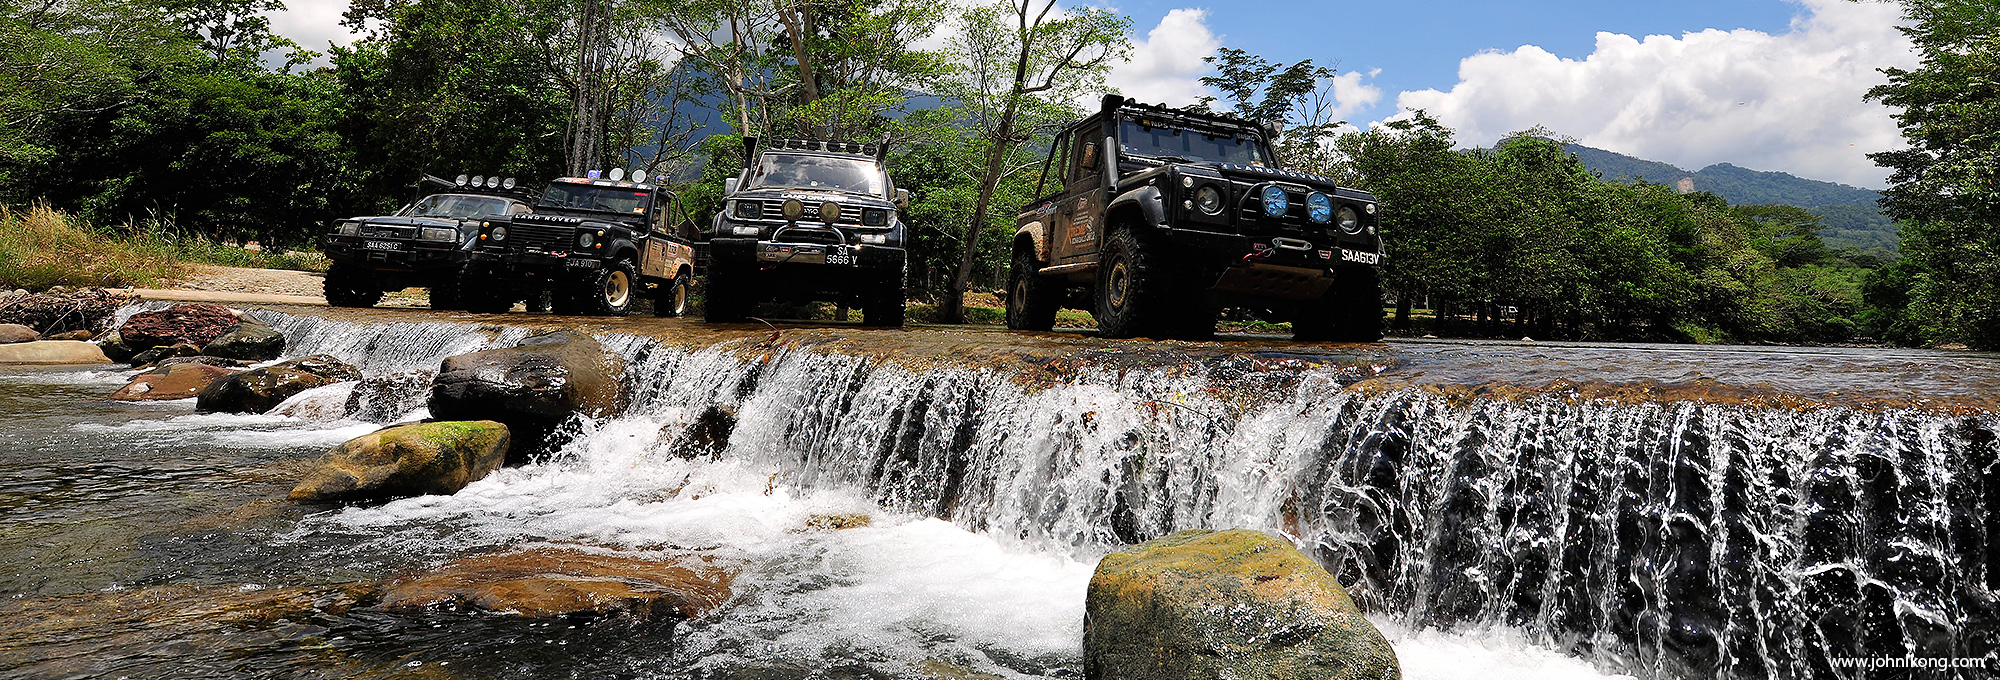 The Borneo Expedition – Experience Borneo Like Never Before